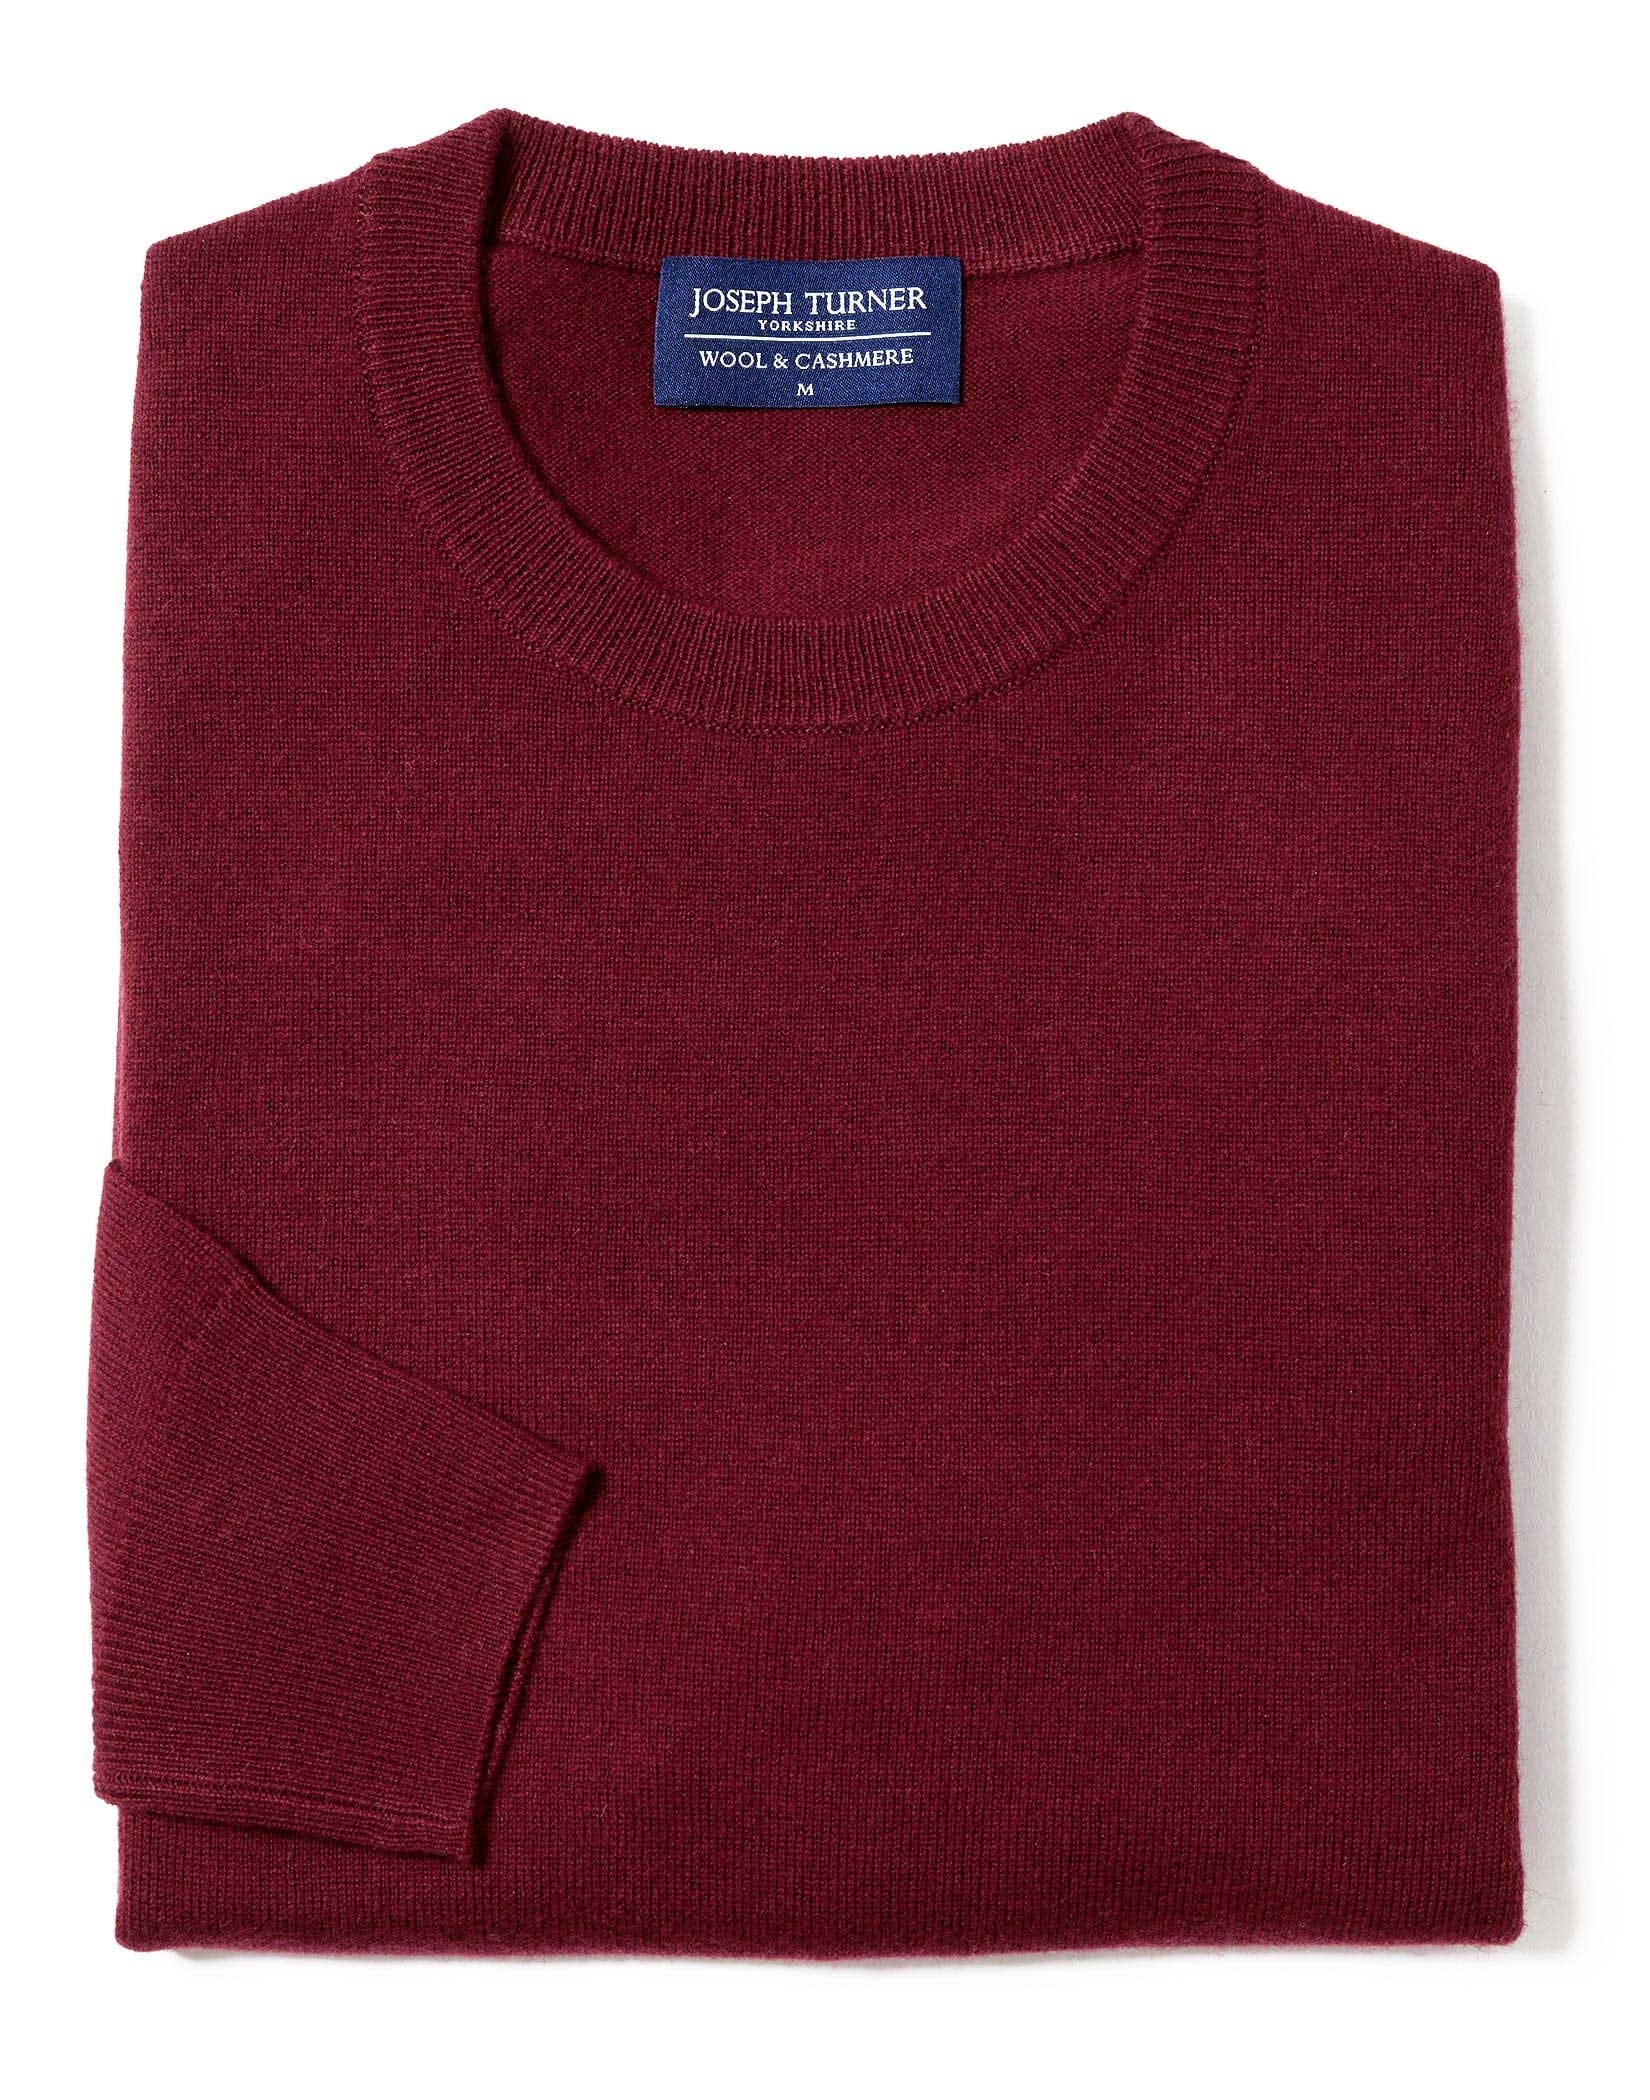 Wool/Cashmere Jumper - Crew Neck